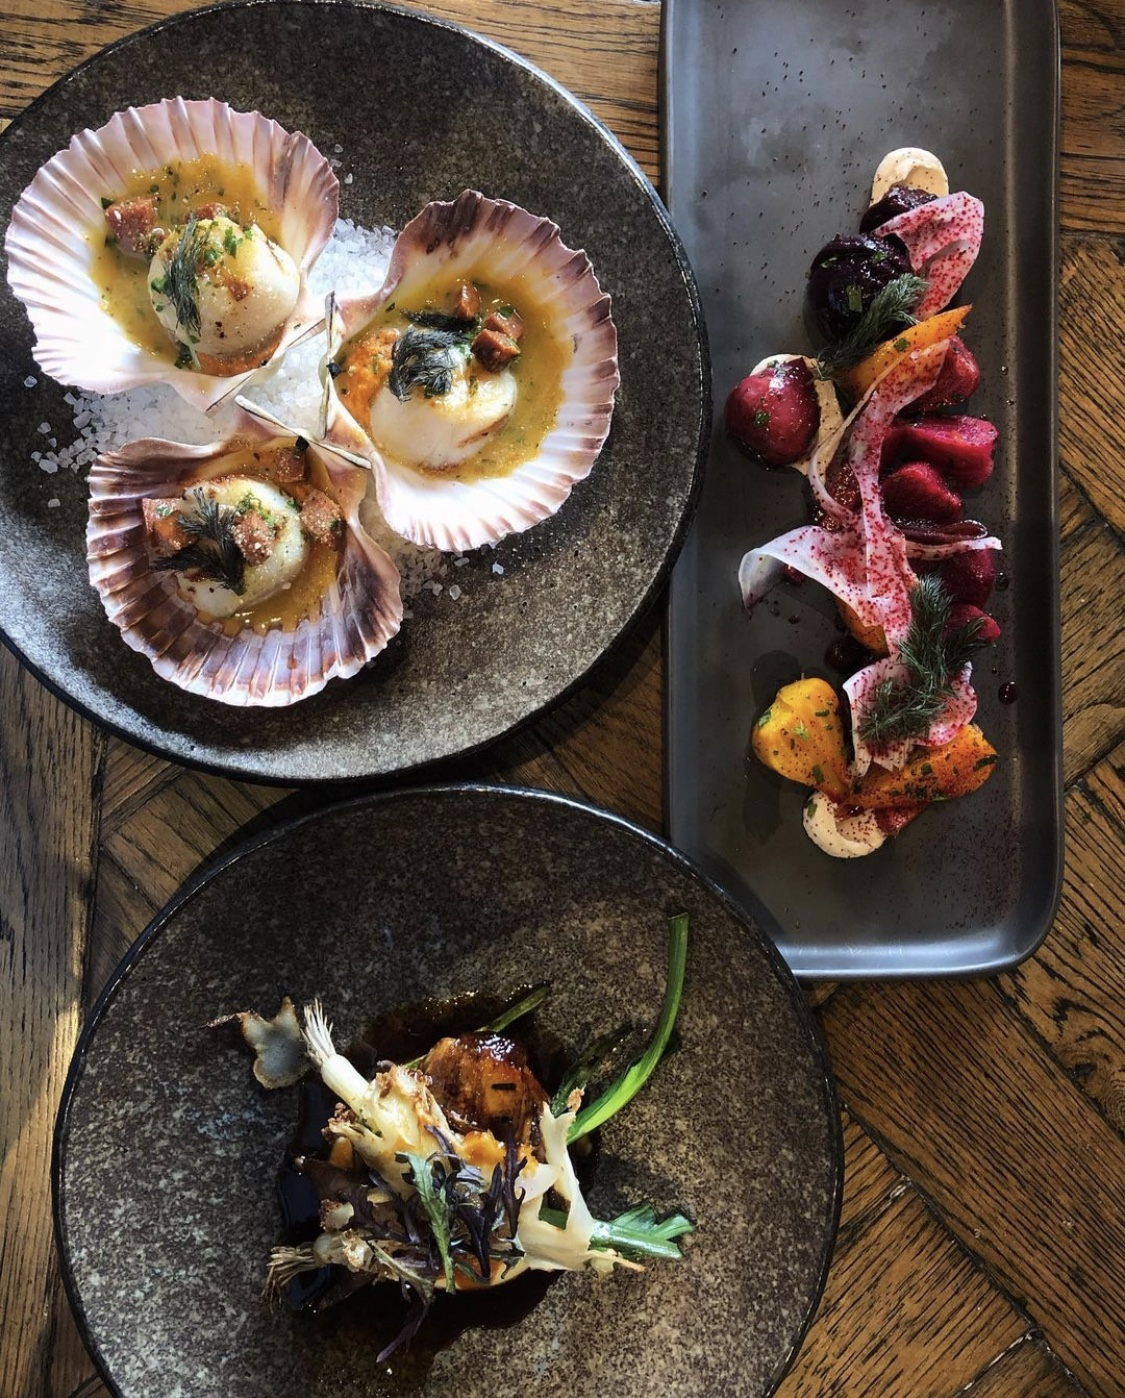 Travis Yarra Valley Guide - Yummy Food Served by Meletos Yarra Valley